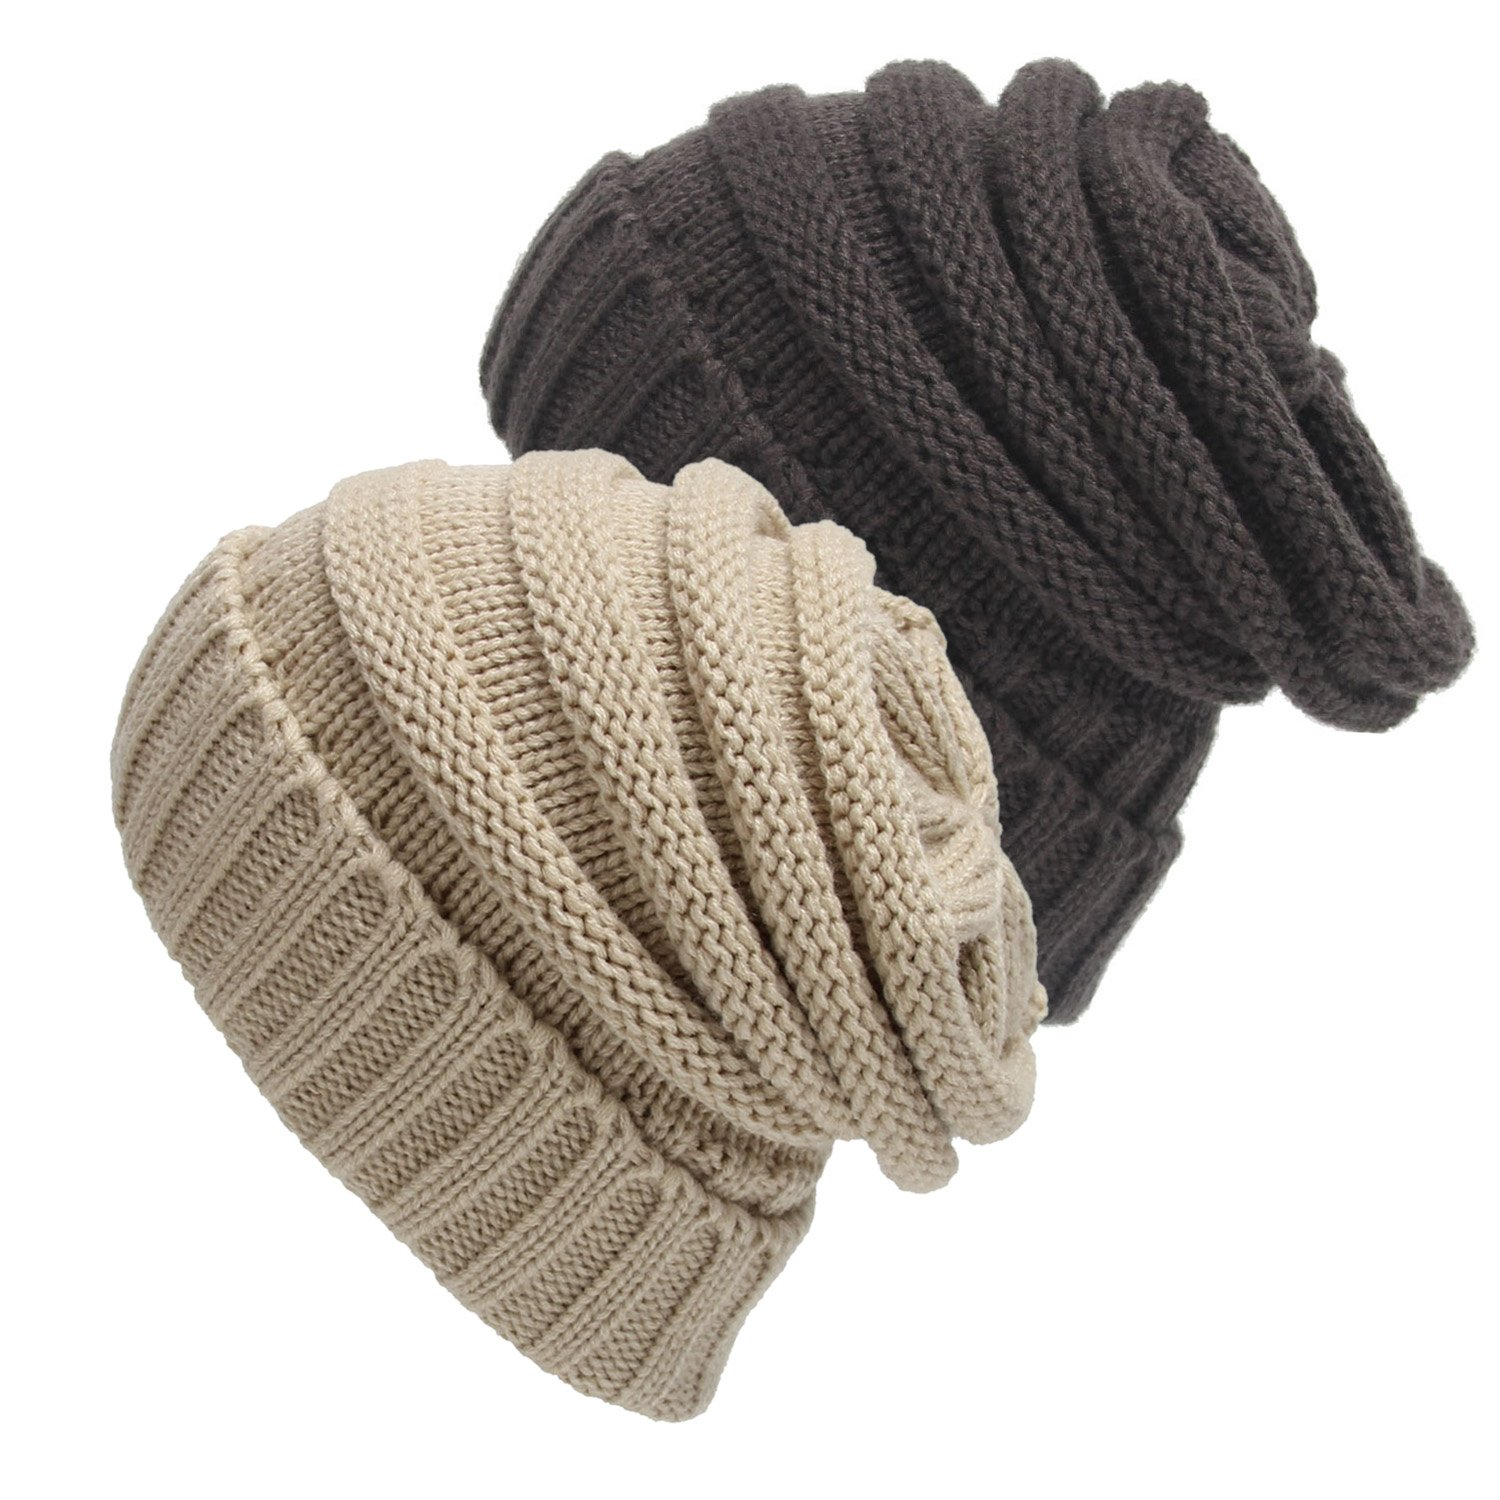 Senker 2 Pack Slouchy Beanie Cap Knit Soft Cozy Cable Hats for Women and Men 029-HATB-1